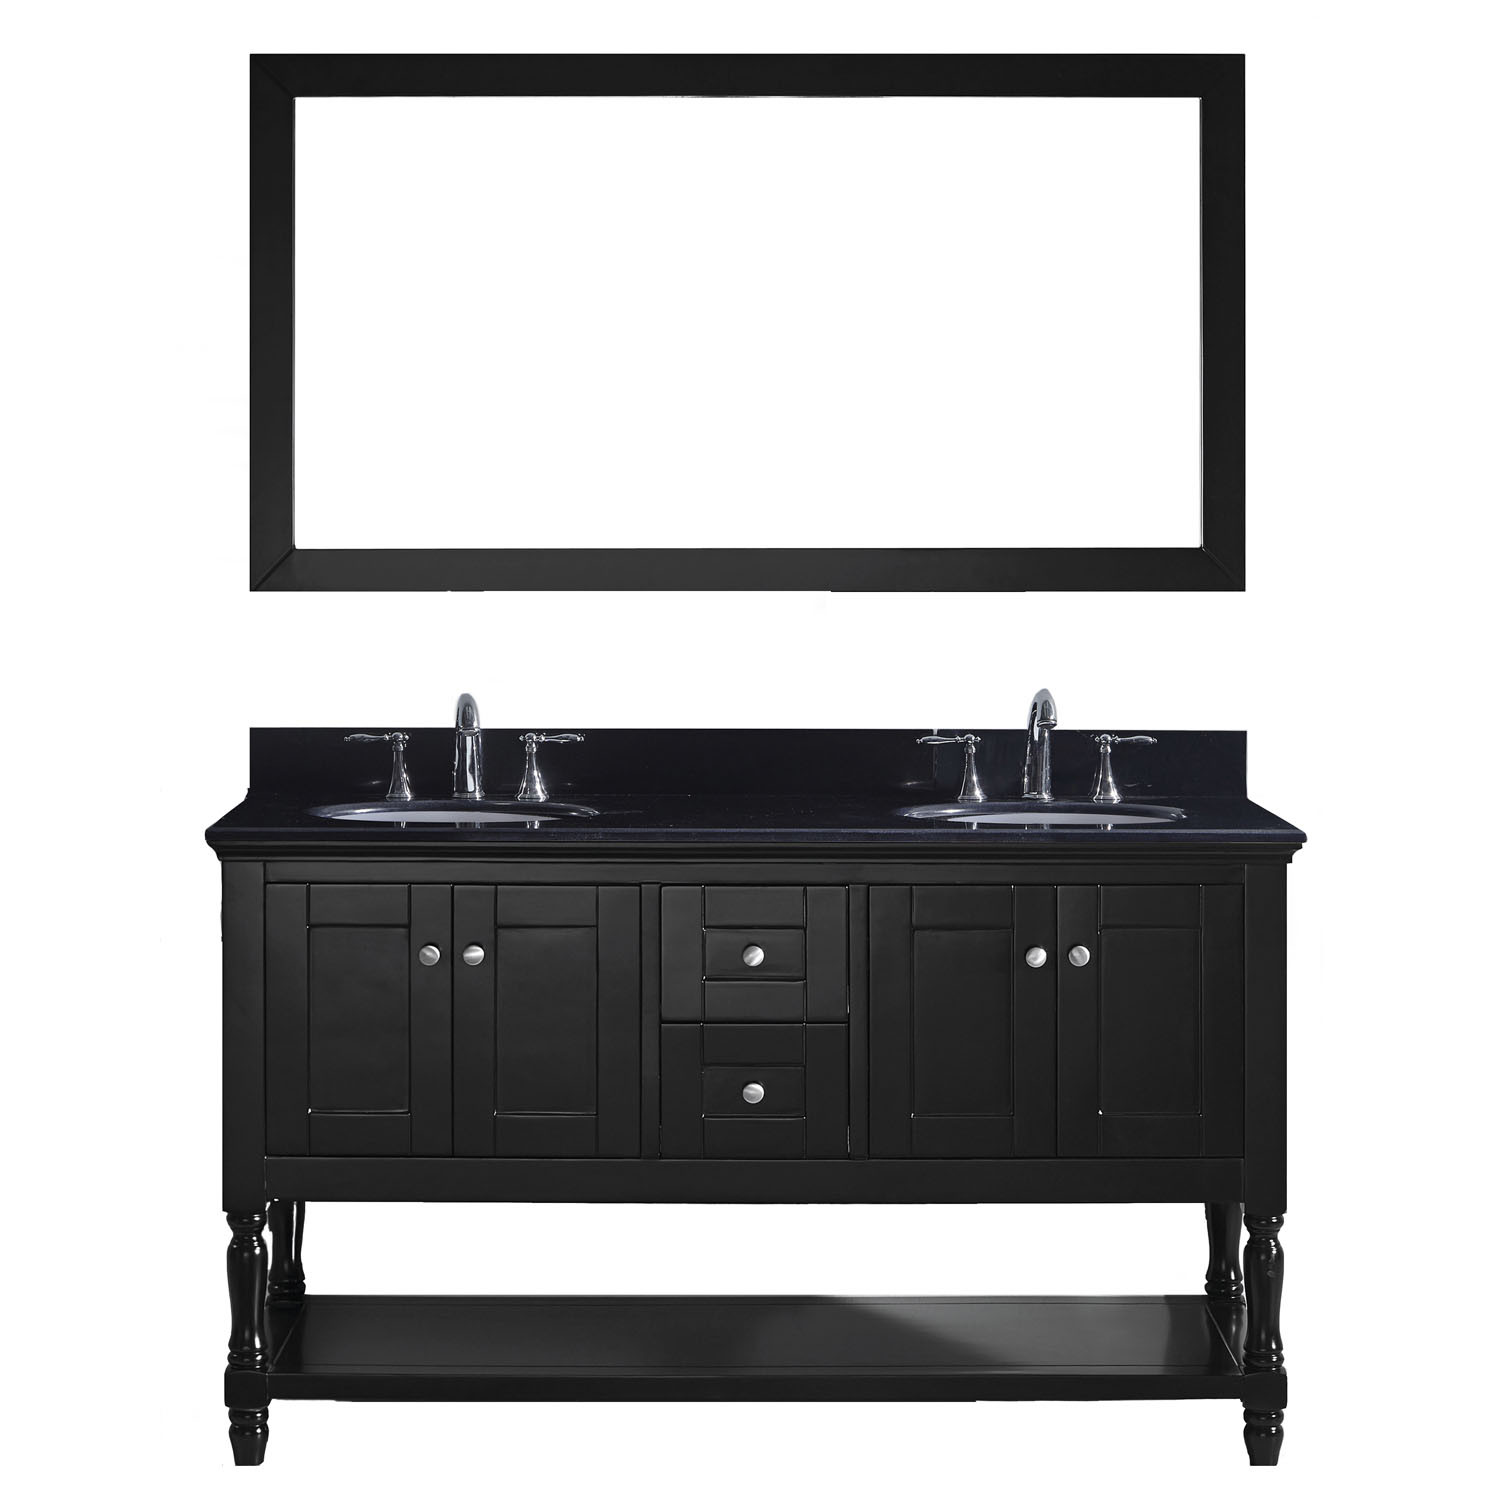 Virtu MD-3160-BGRO-ES-002 Julianna 60 Inch Double Bathroom Vanity Set In Espresso